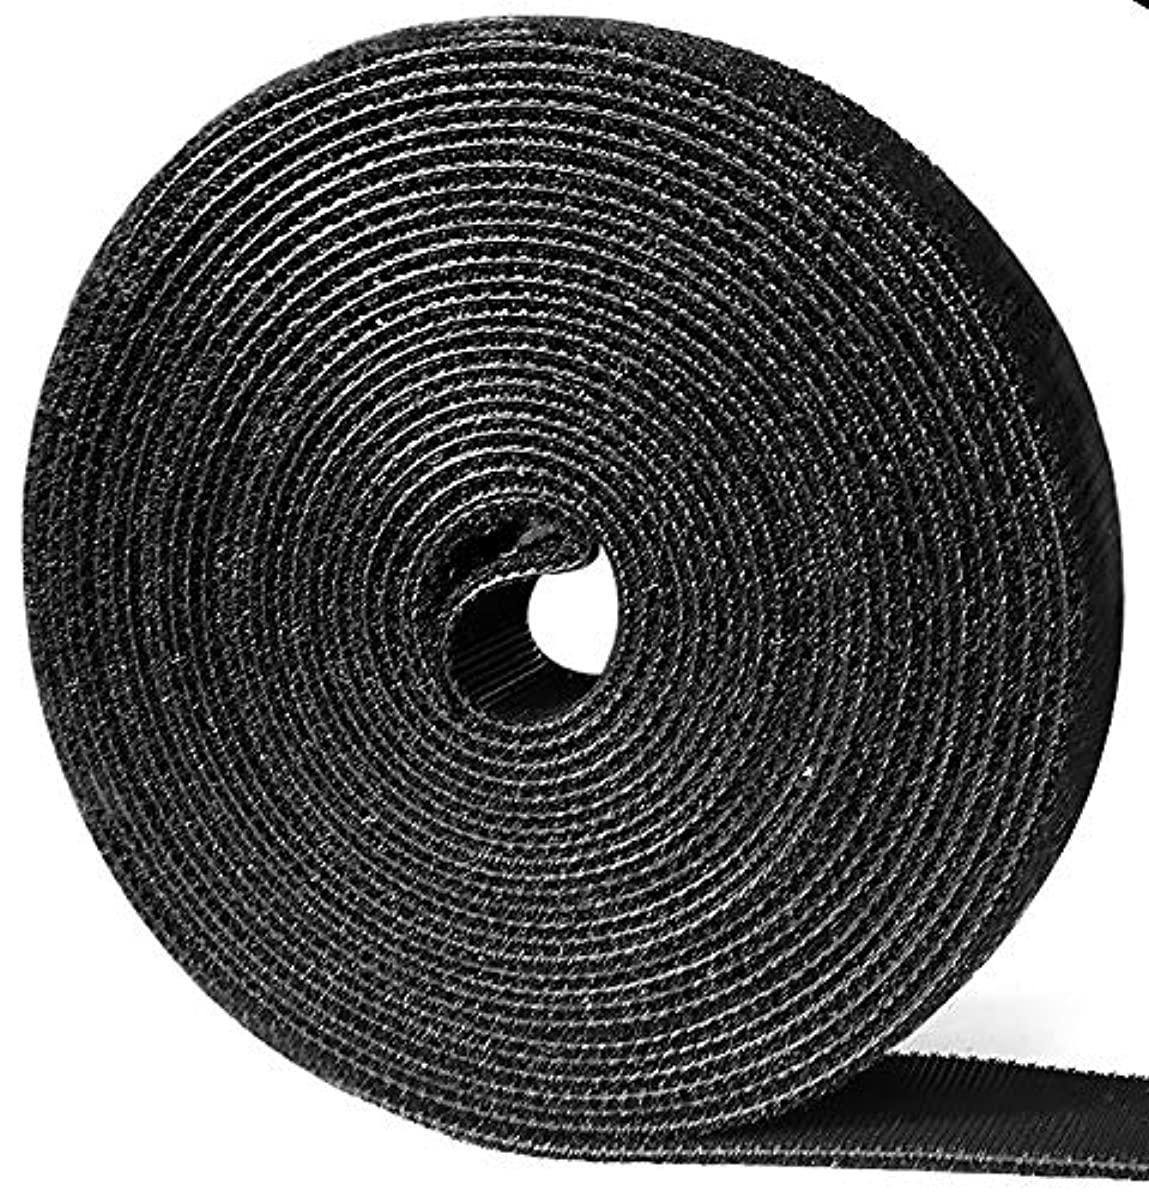 Heze Reusable Fastening Tape/Cable Ties (15ft)